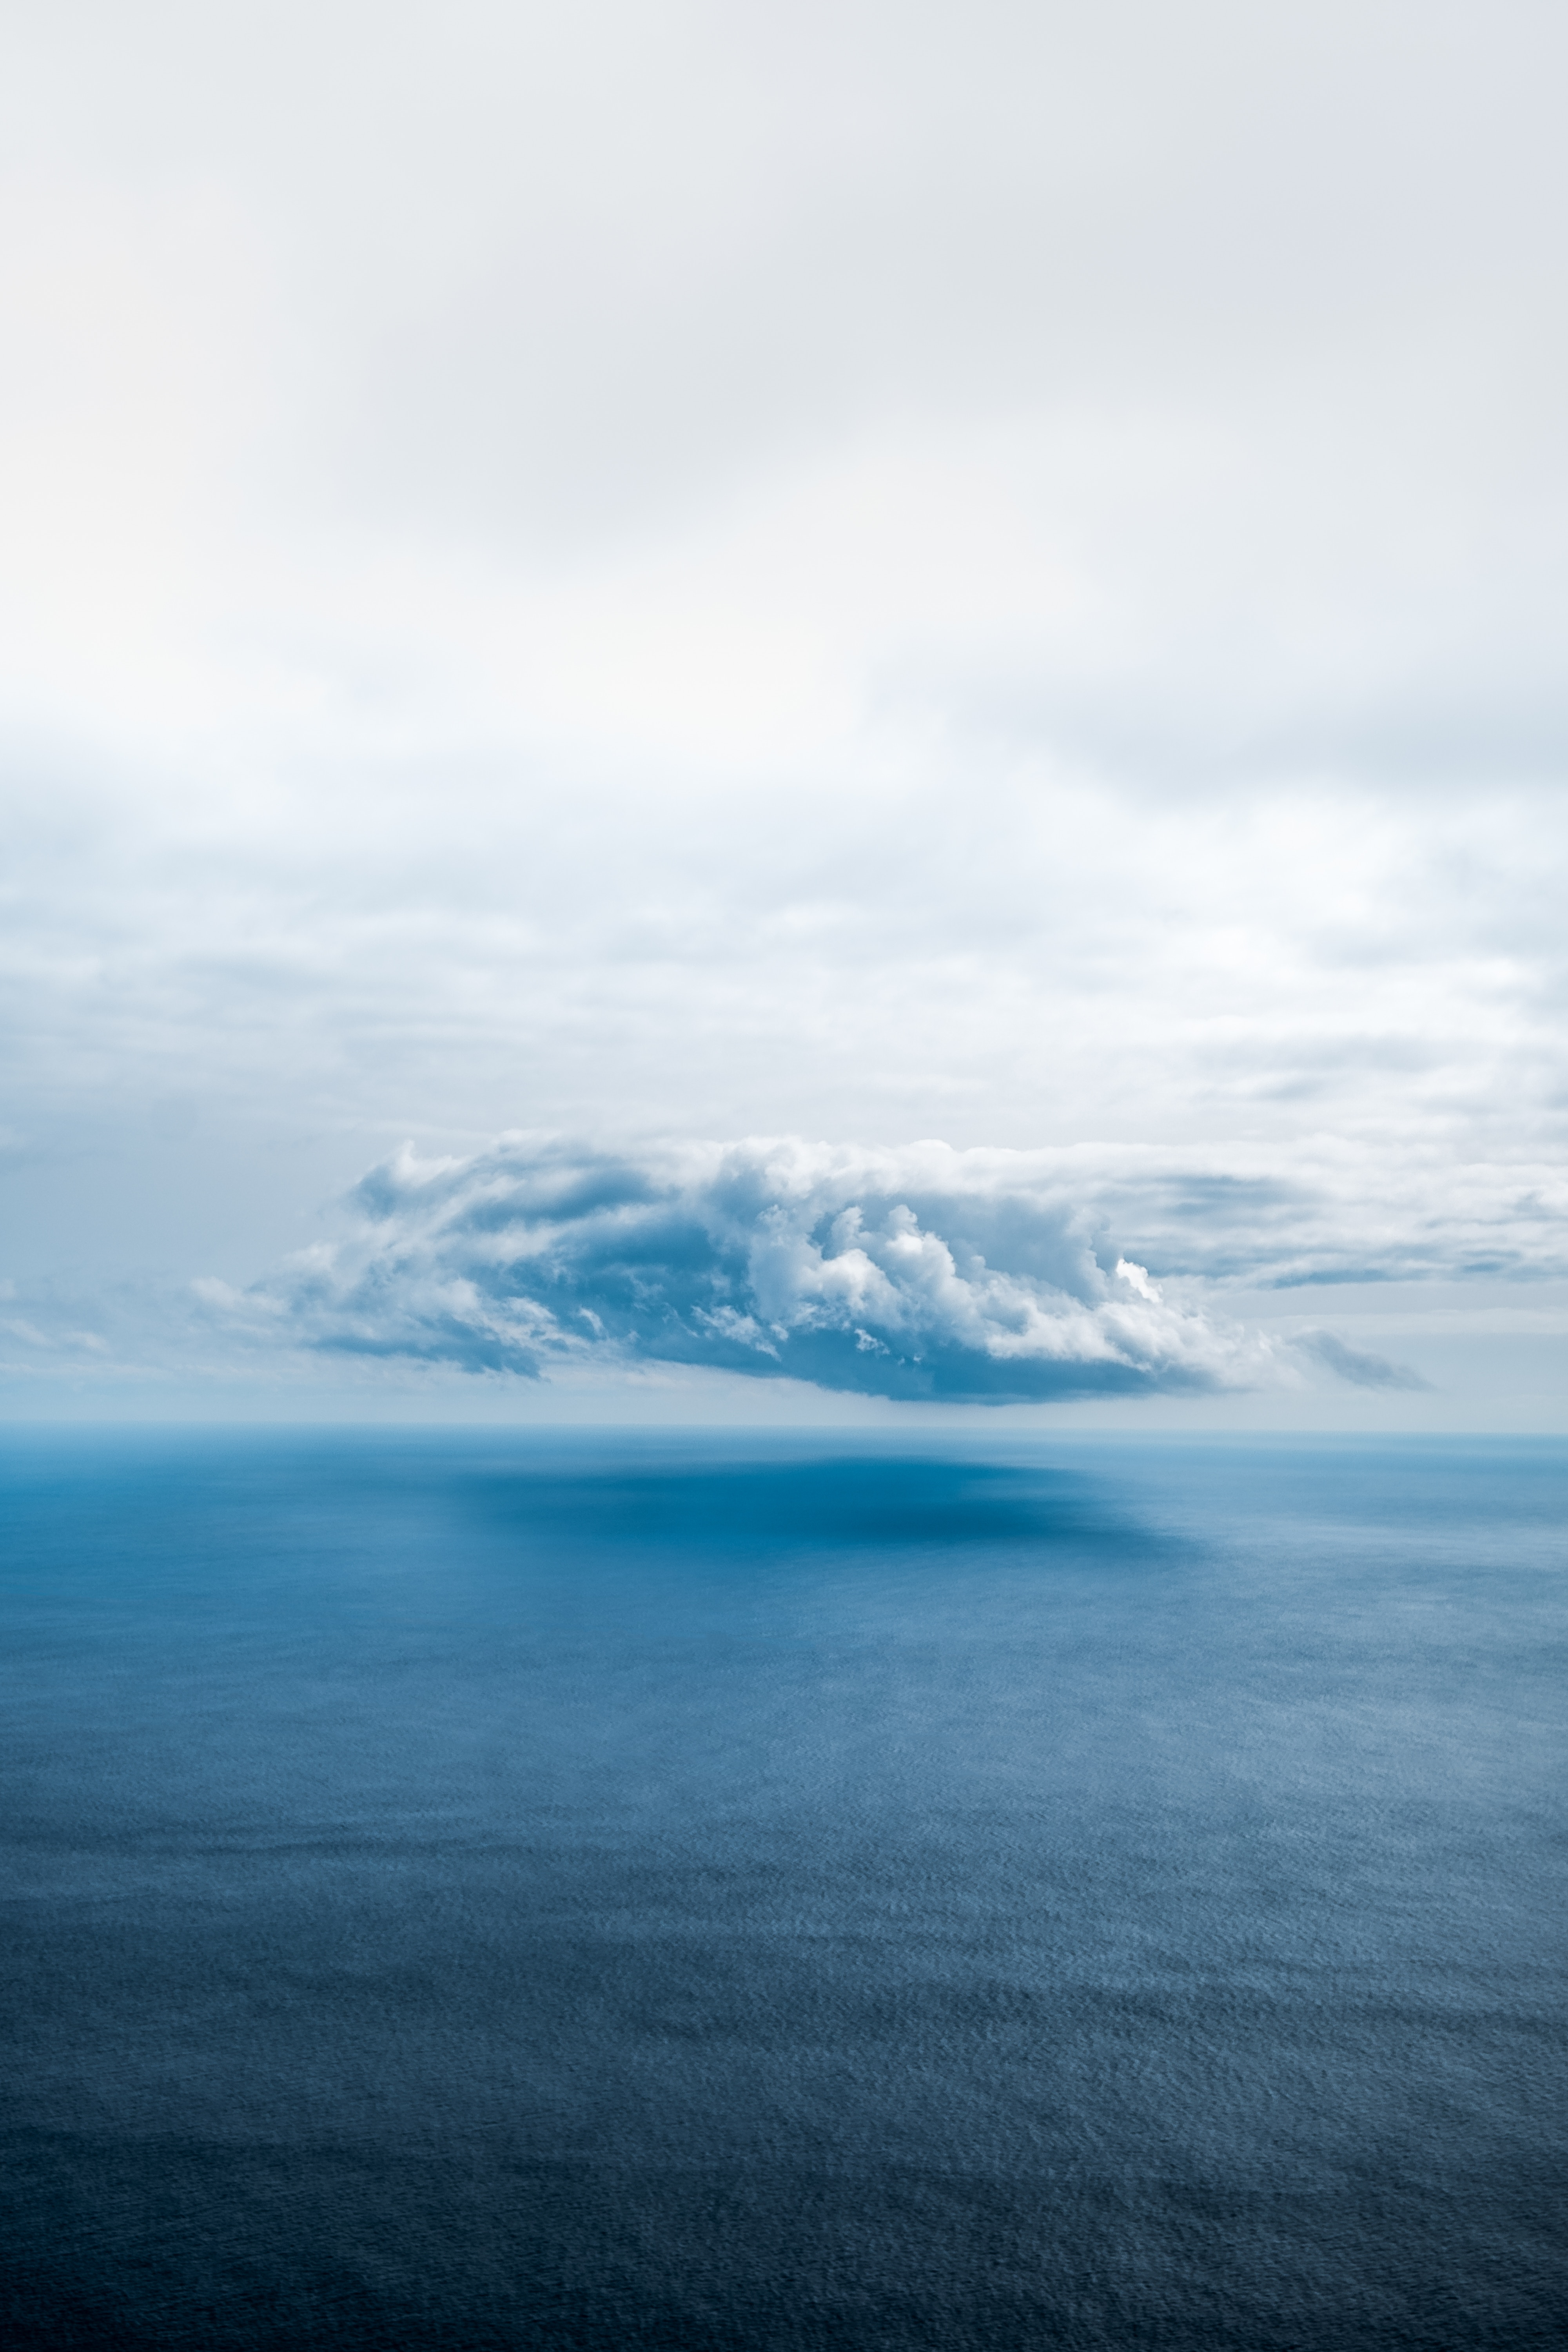 129760 download wallpaper Nature, Sky, Sea, Horizon, Cloud, Porous screensavers and pictures for free